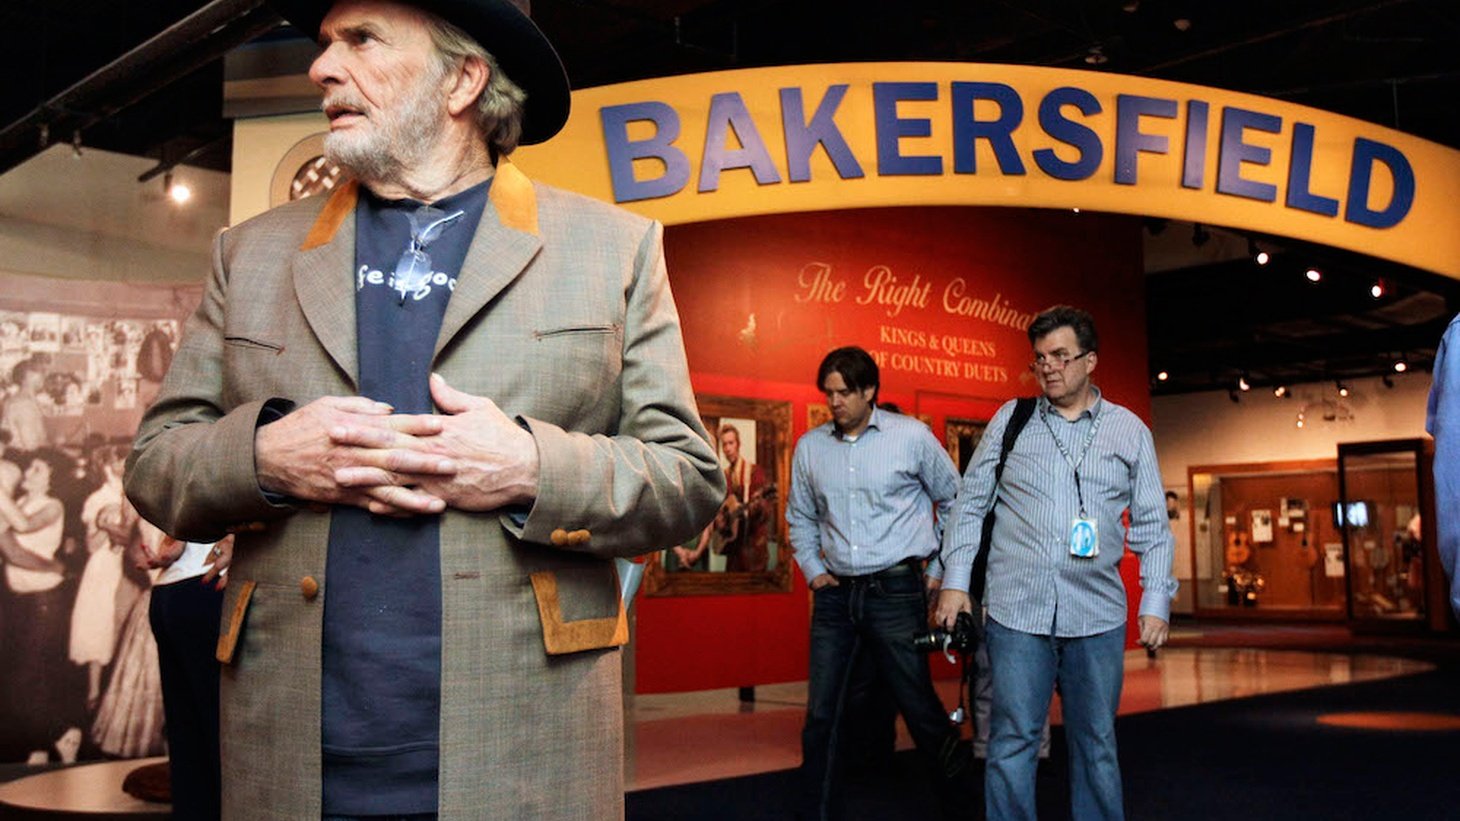 The Bakersfield Sound was once the dominant force in American country music, but those days are long gone. Now Bakersfield serves as a cautionary tale for other regions of the state that could see their defining industries fade out if they are not treated with care.